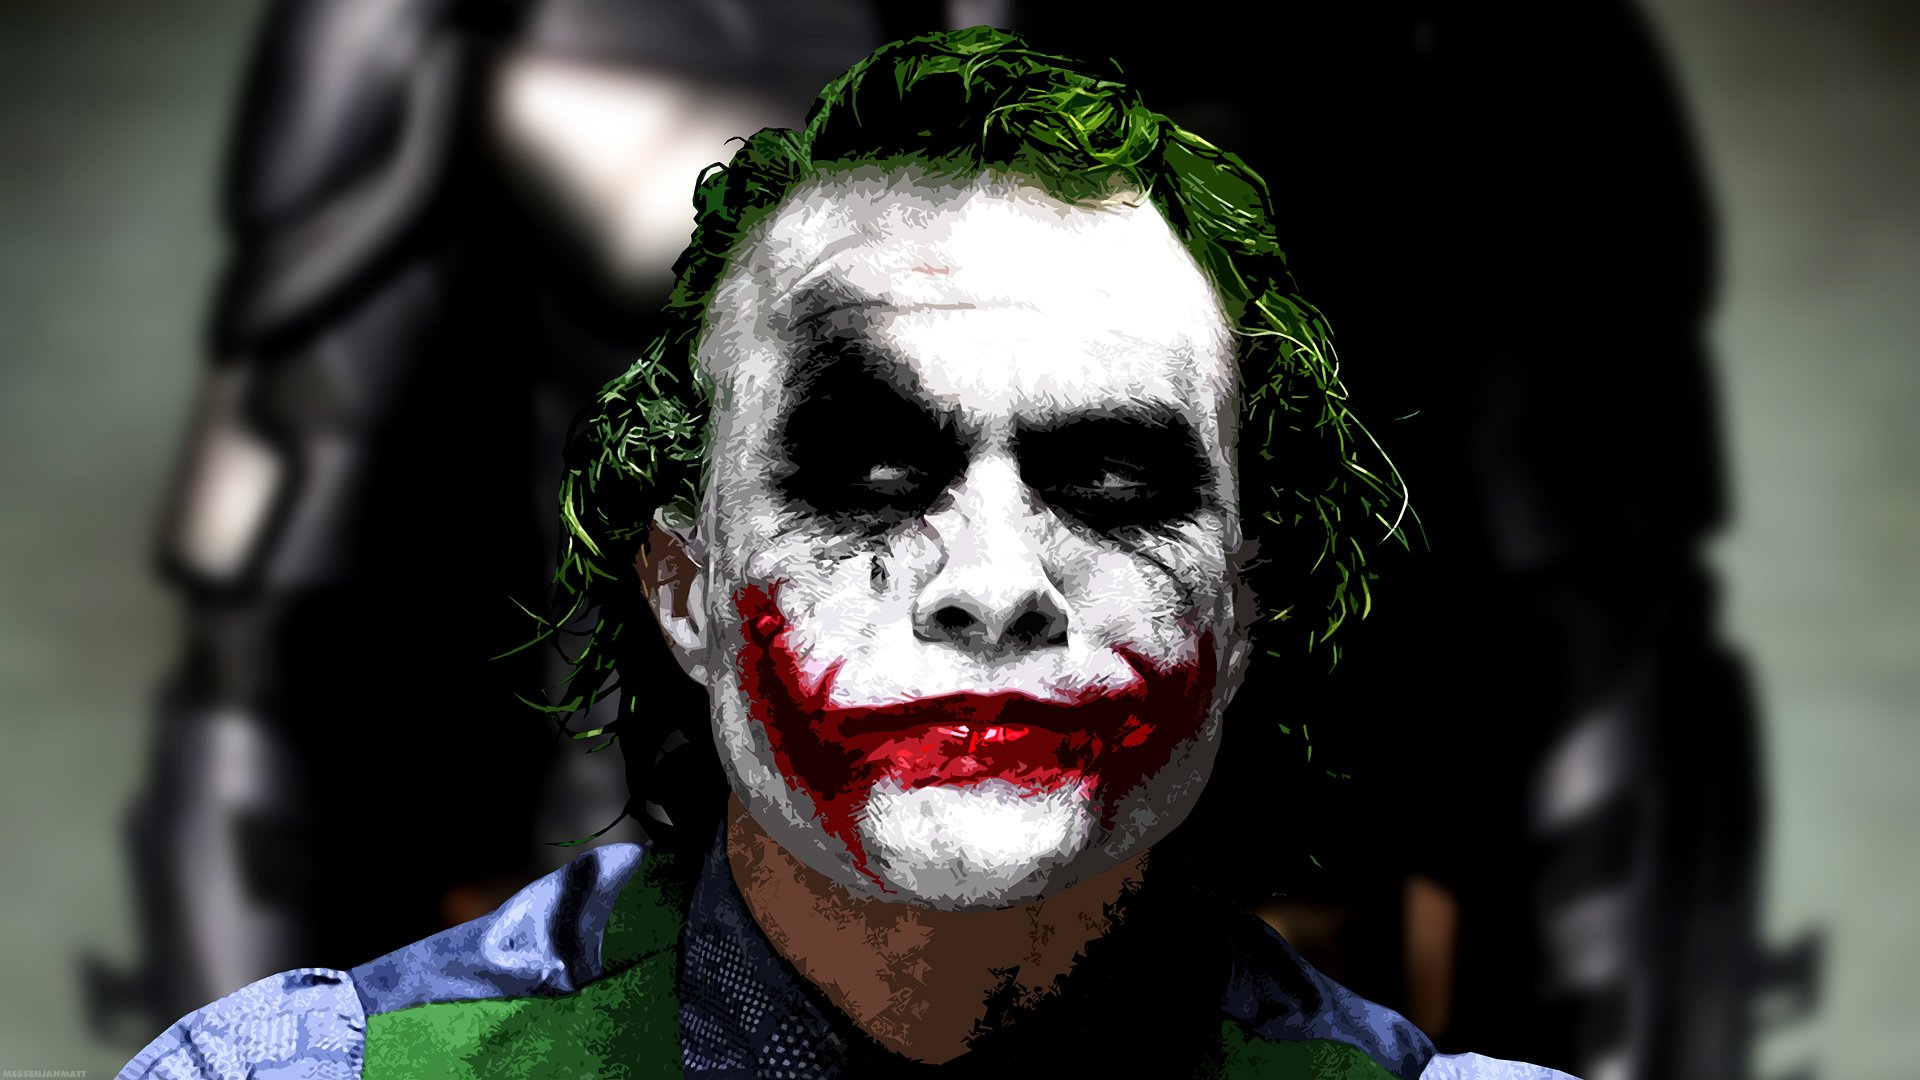 image of Joker - I like that